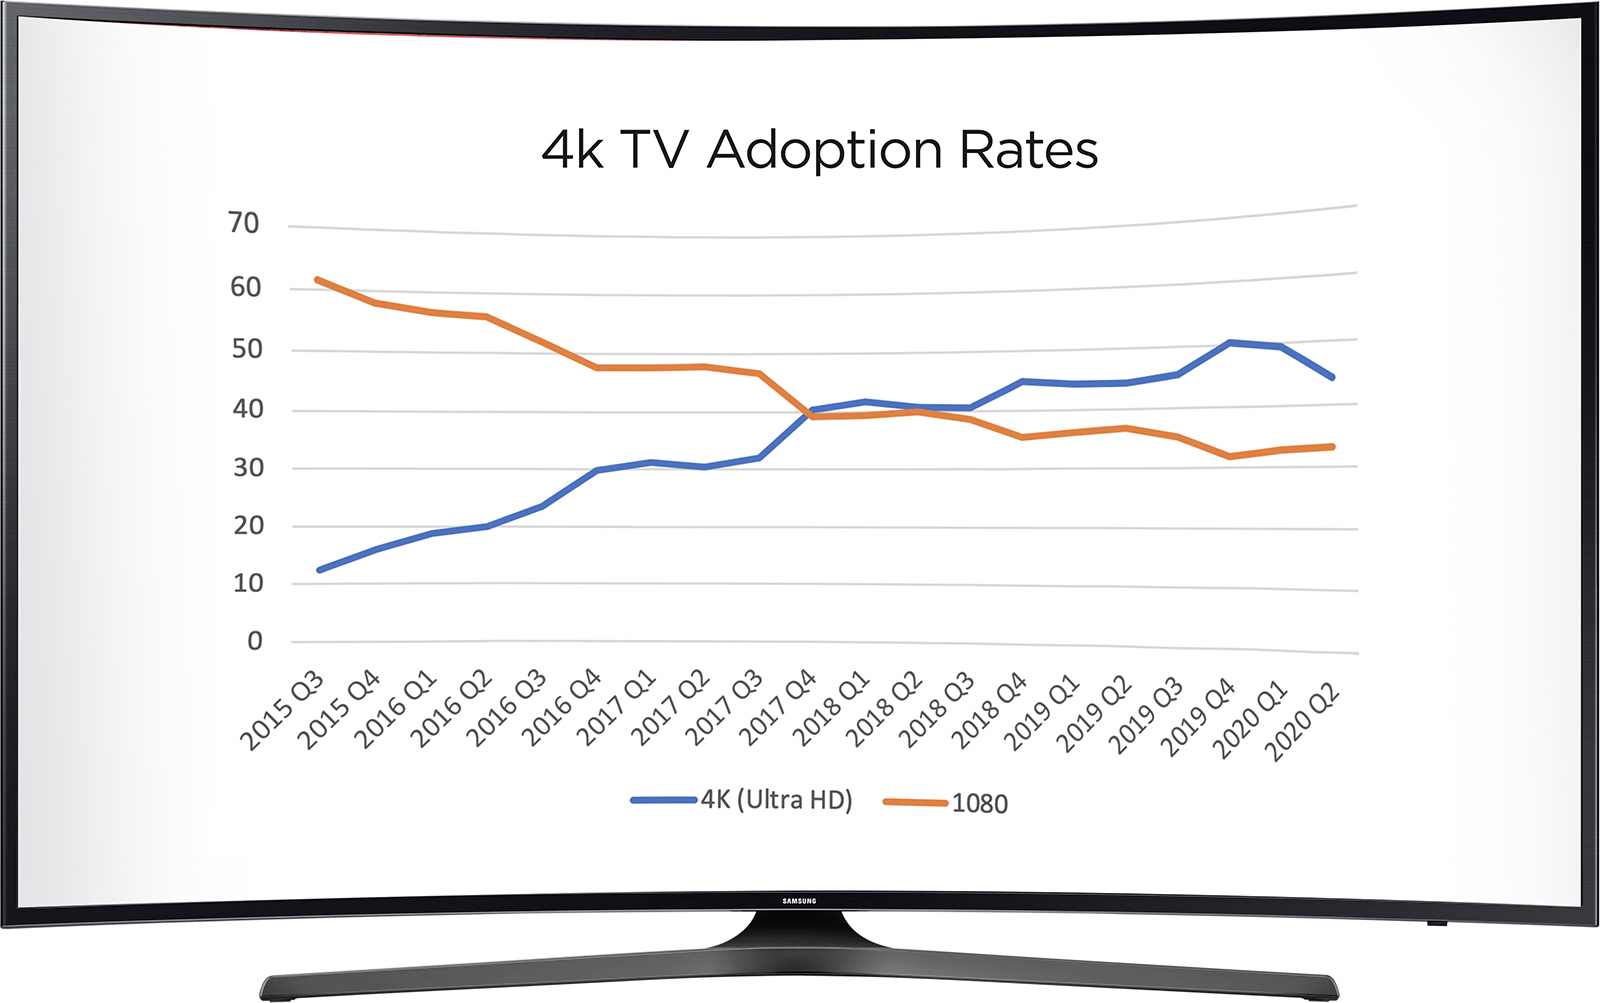 a graph displayed on a television screen, detailing how 4K televisions have outsold 1080p/i televisions over time